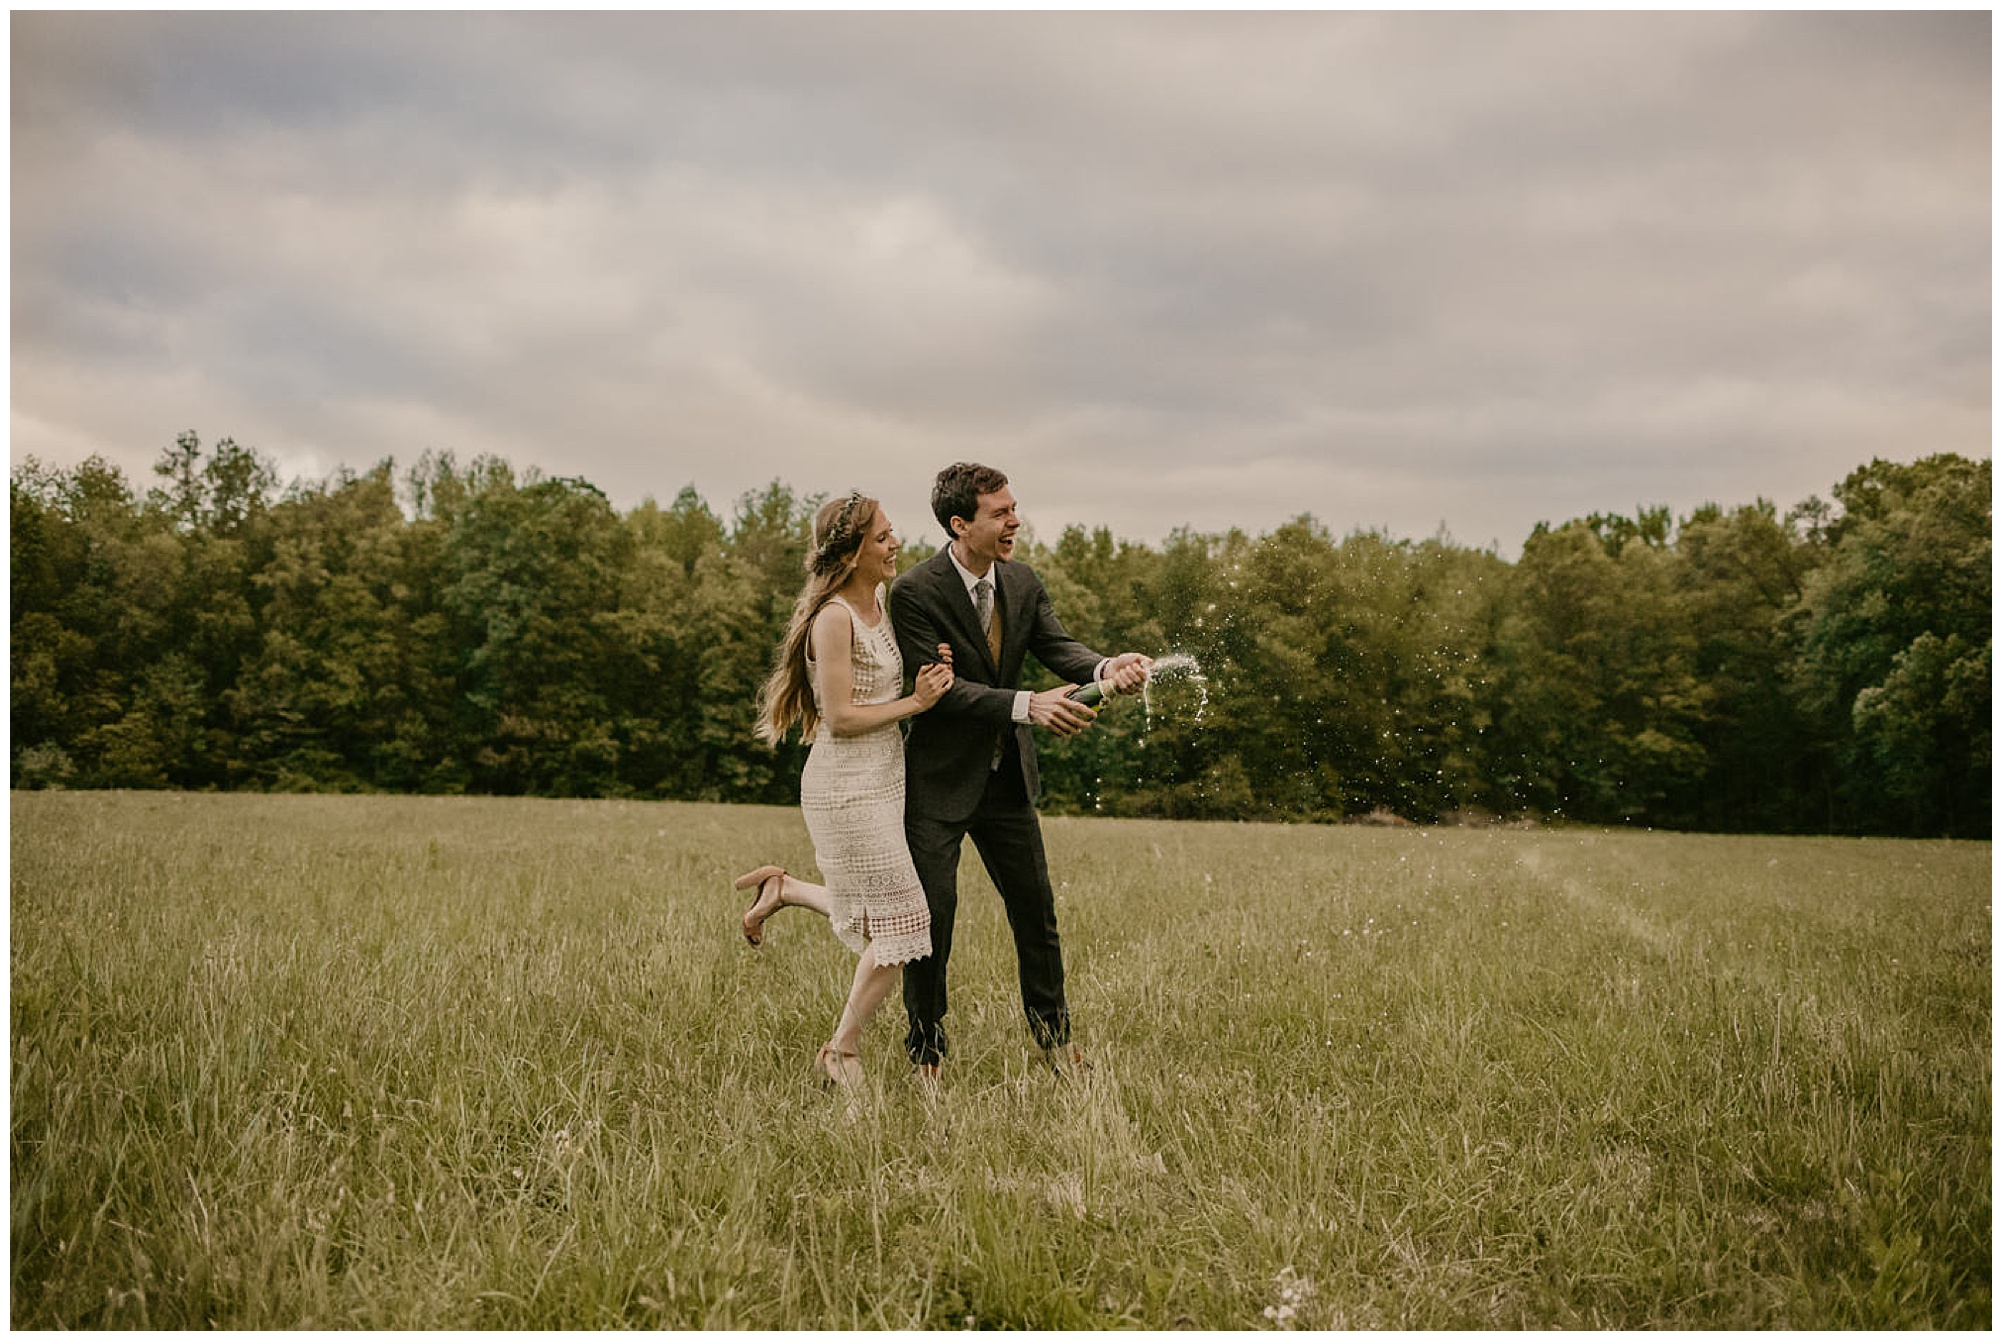 vintage lace cocktail wedding dress. gown. flower crown. outdoors. maryland eastern shore. couple laughing. running through field. popping champagne at prancing deer farm. outdoor green eco-friendly forest woodland venue in warwick maryland md